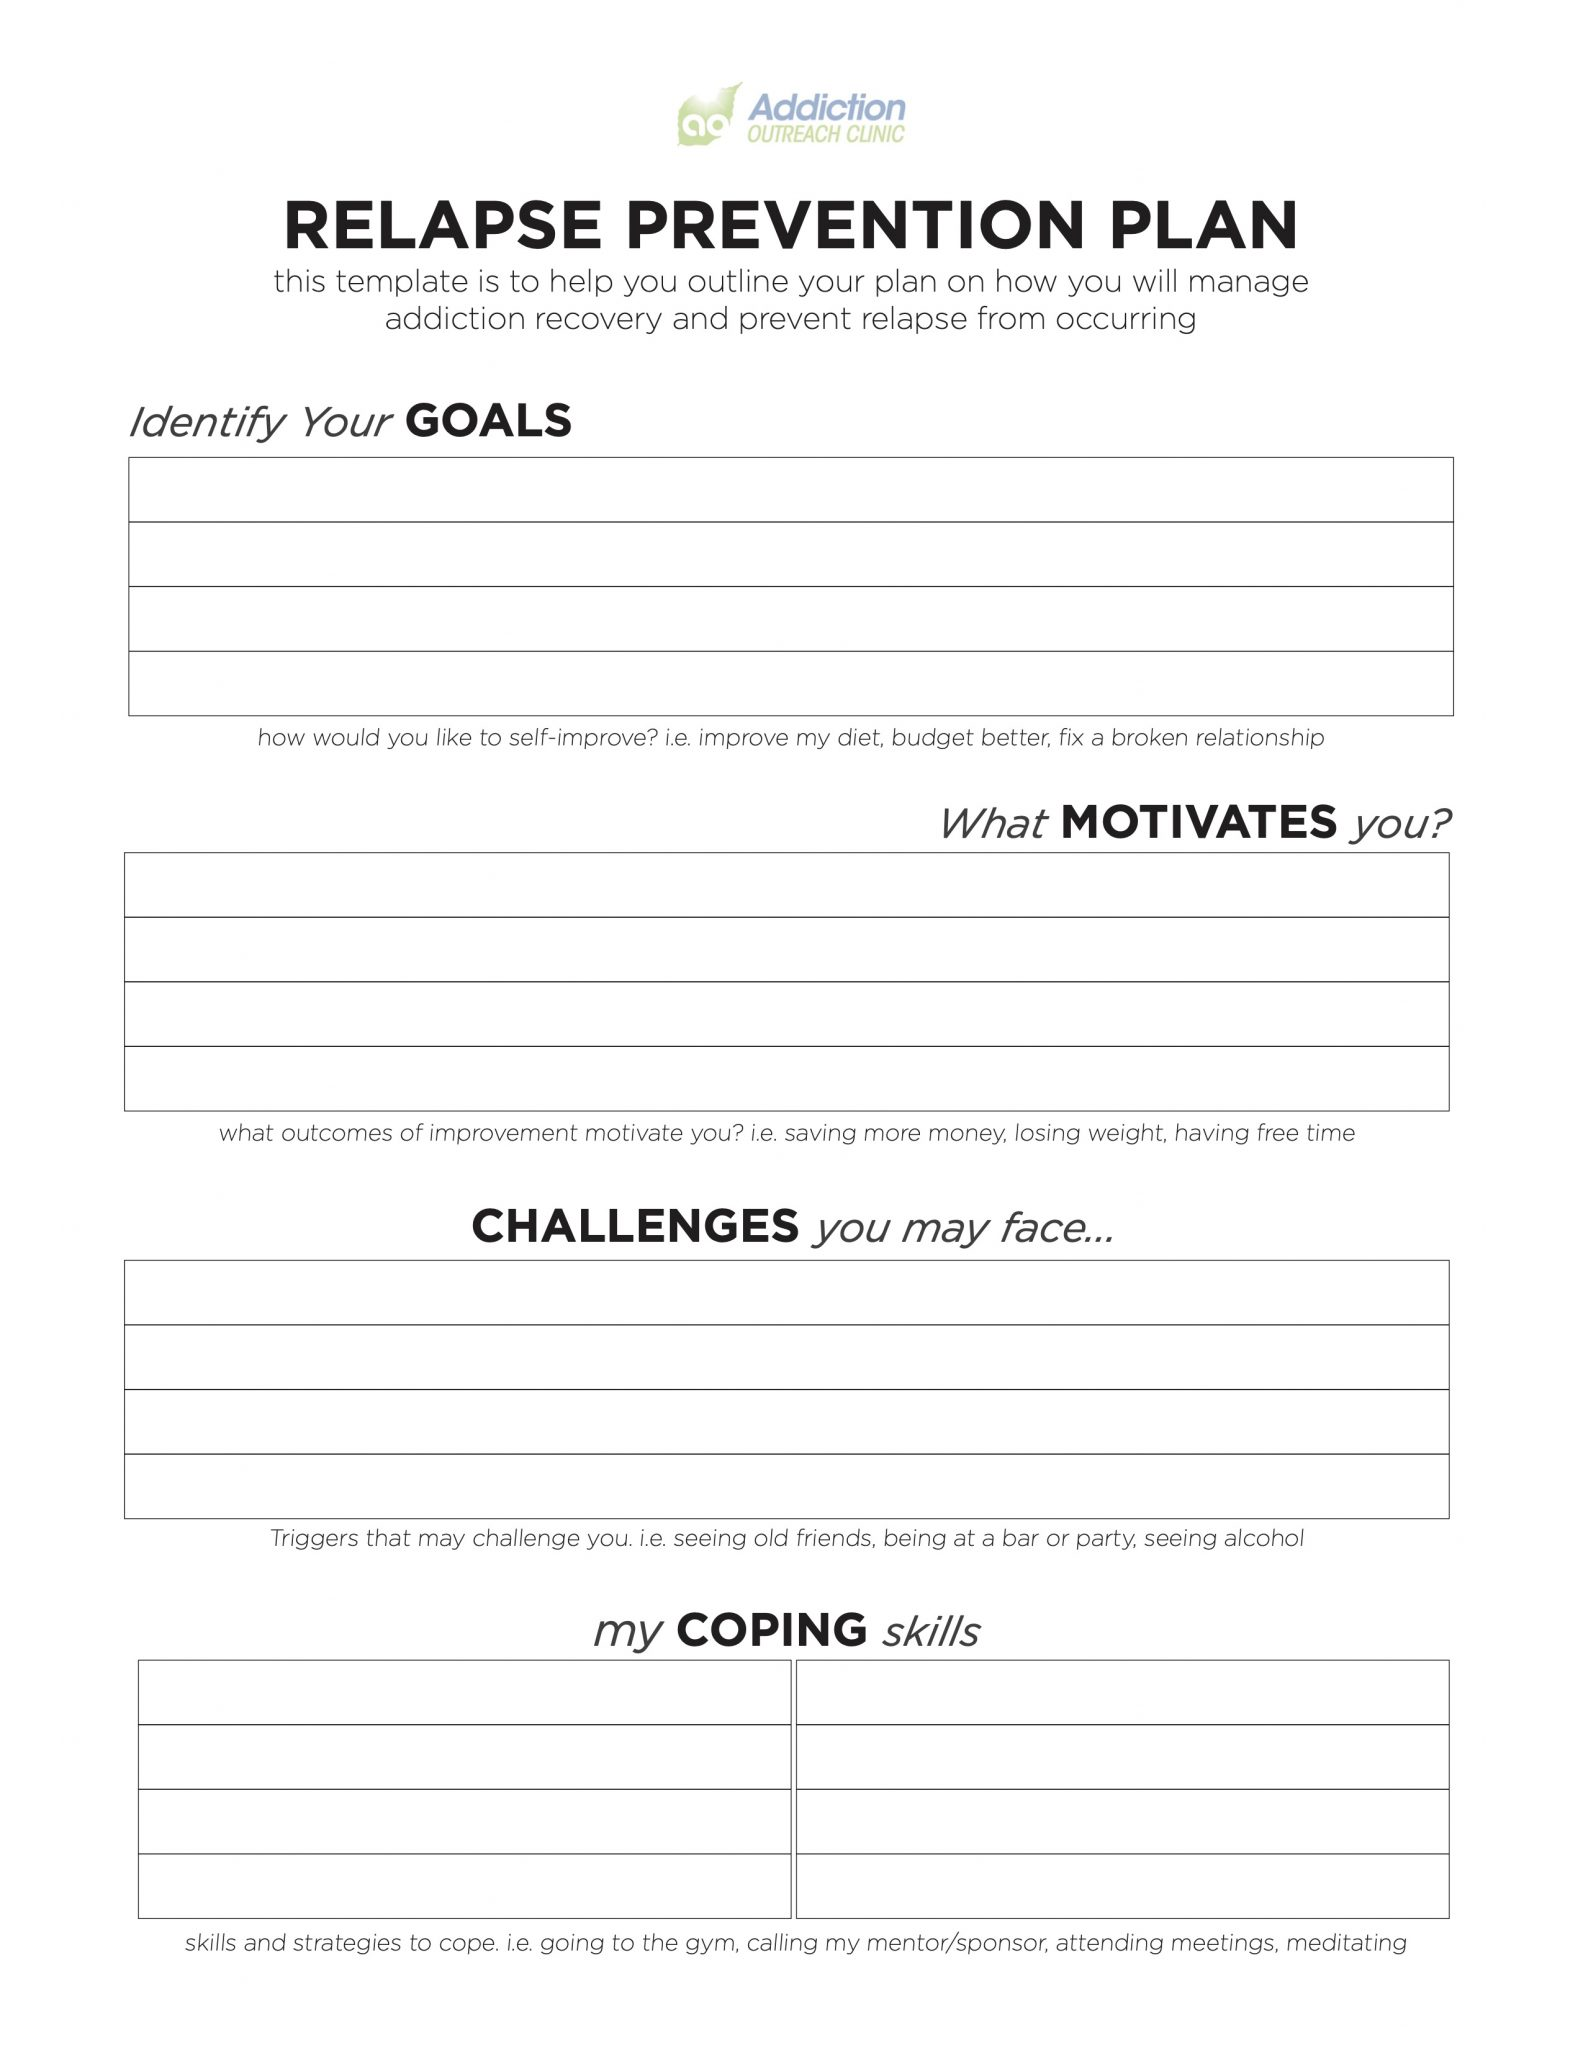 Relapse Prevention Plan Template